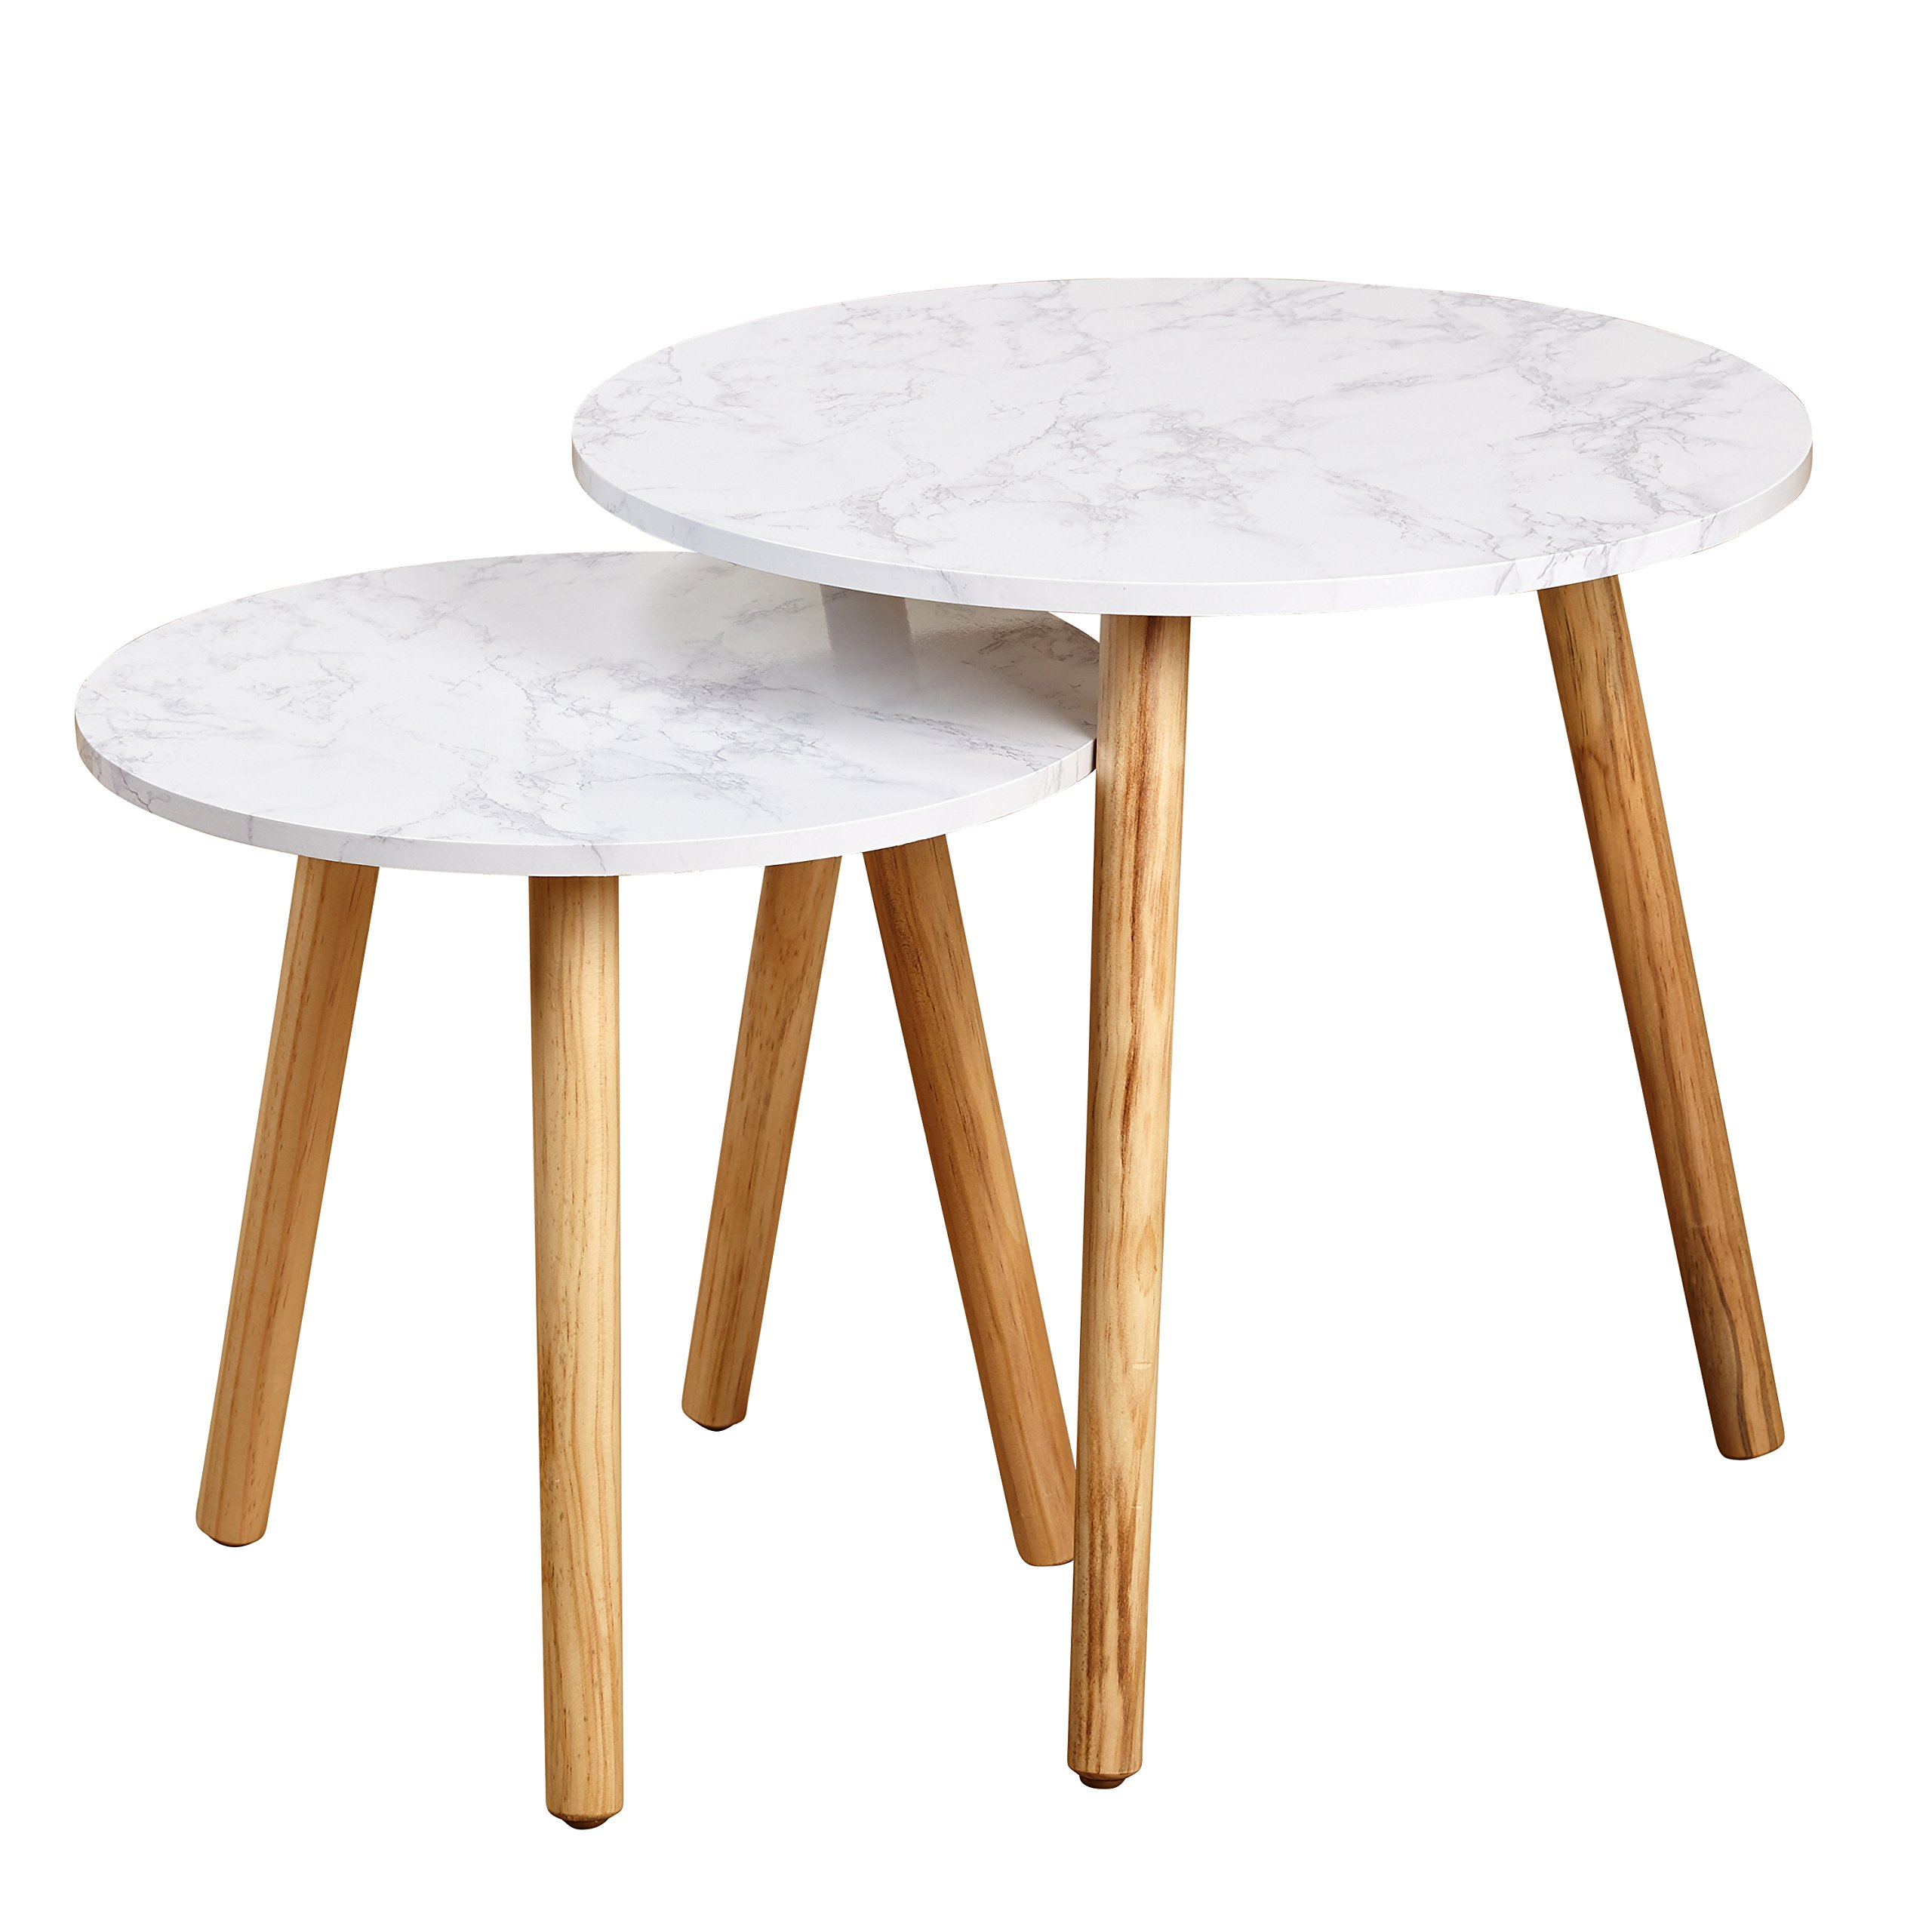 Target Marketing Systems Darcy Collection Mid Century Modern Set of 2 Laminated Faux Marble Nesting Tables by Target Marketing Systems